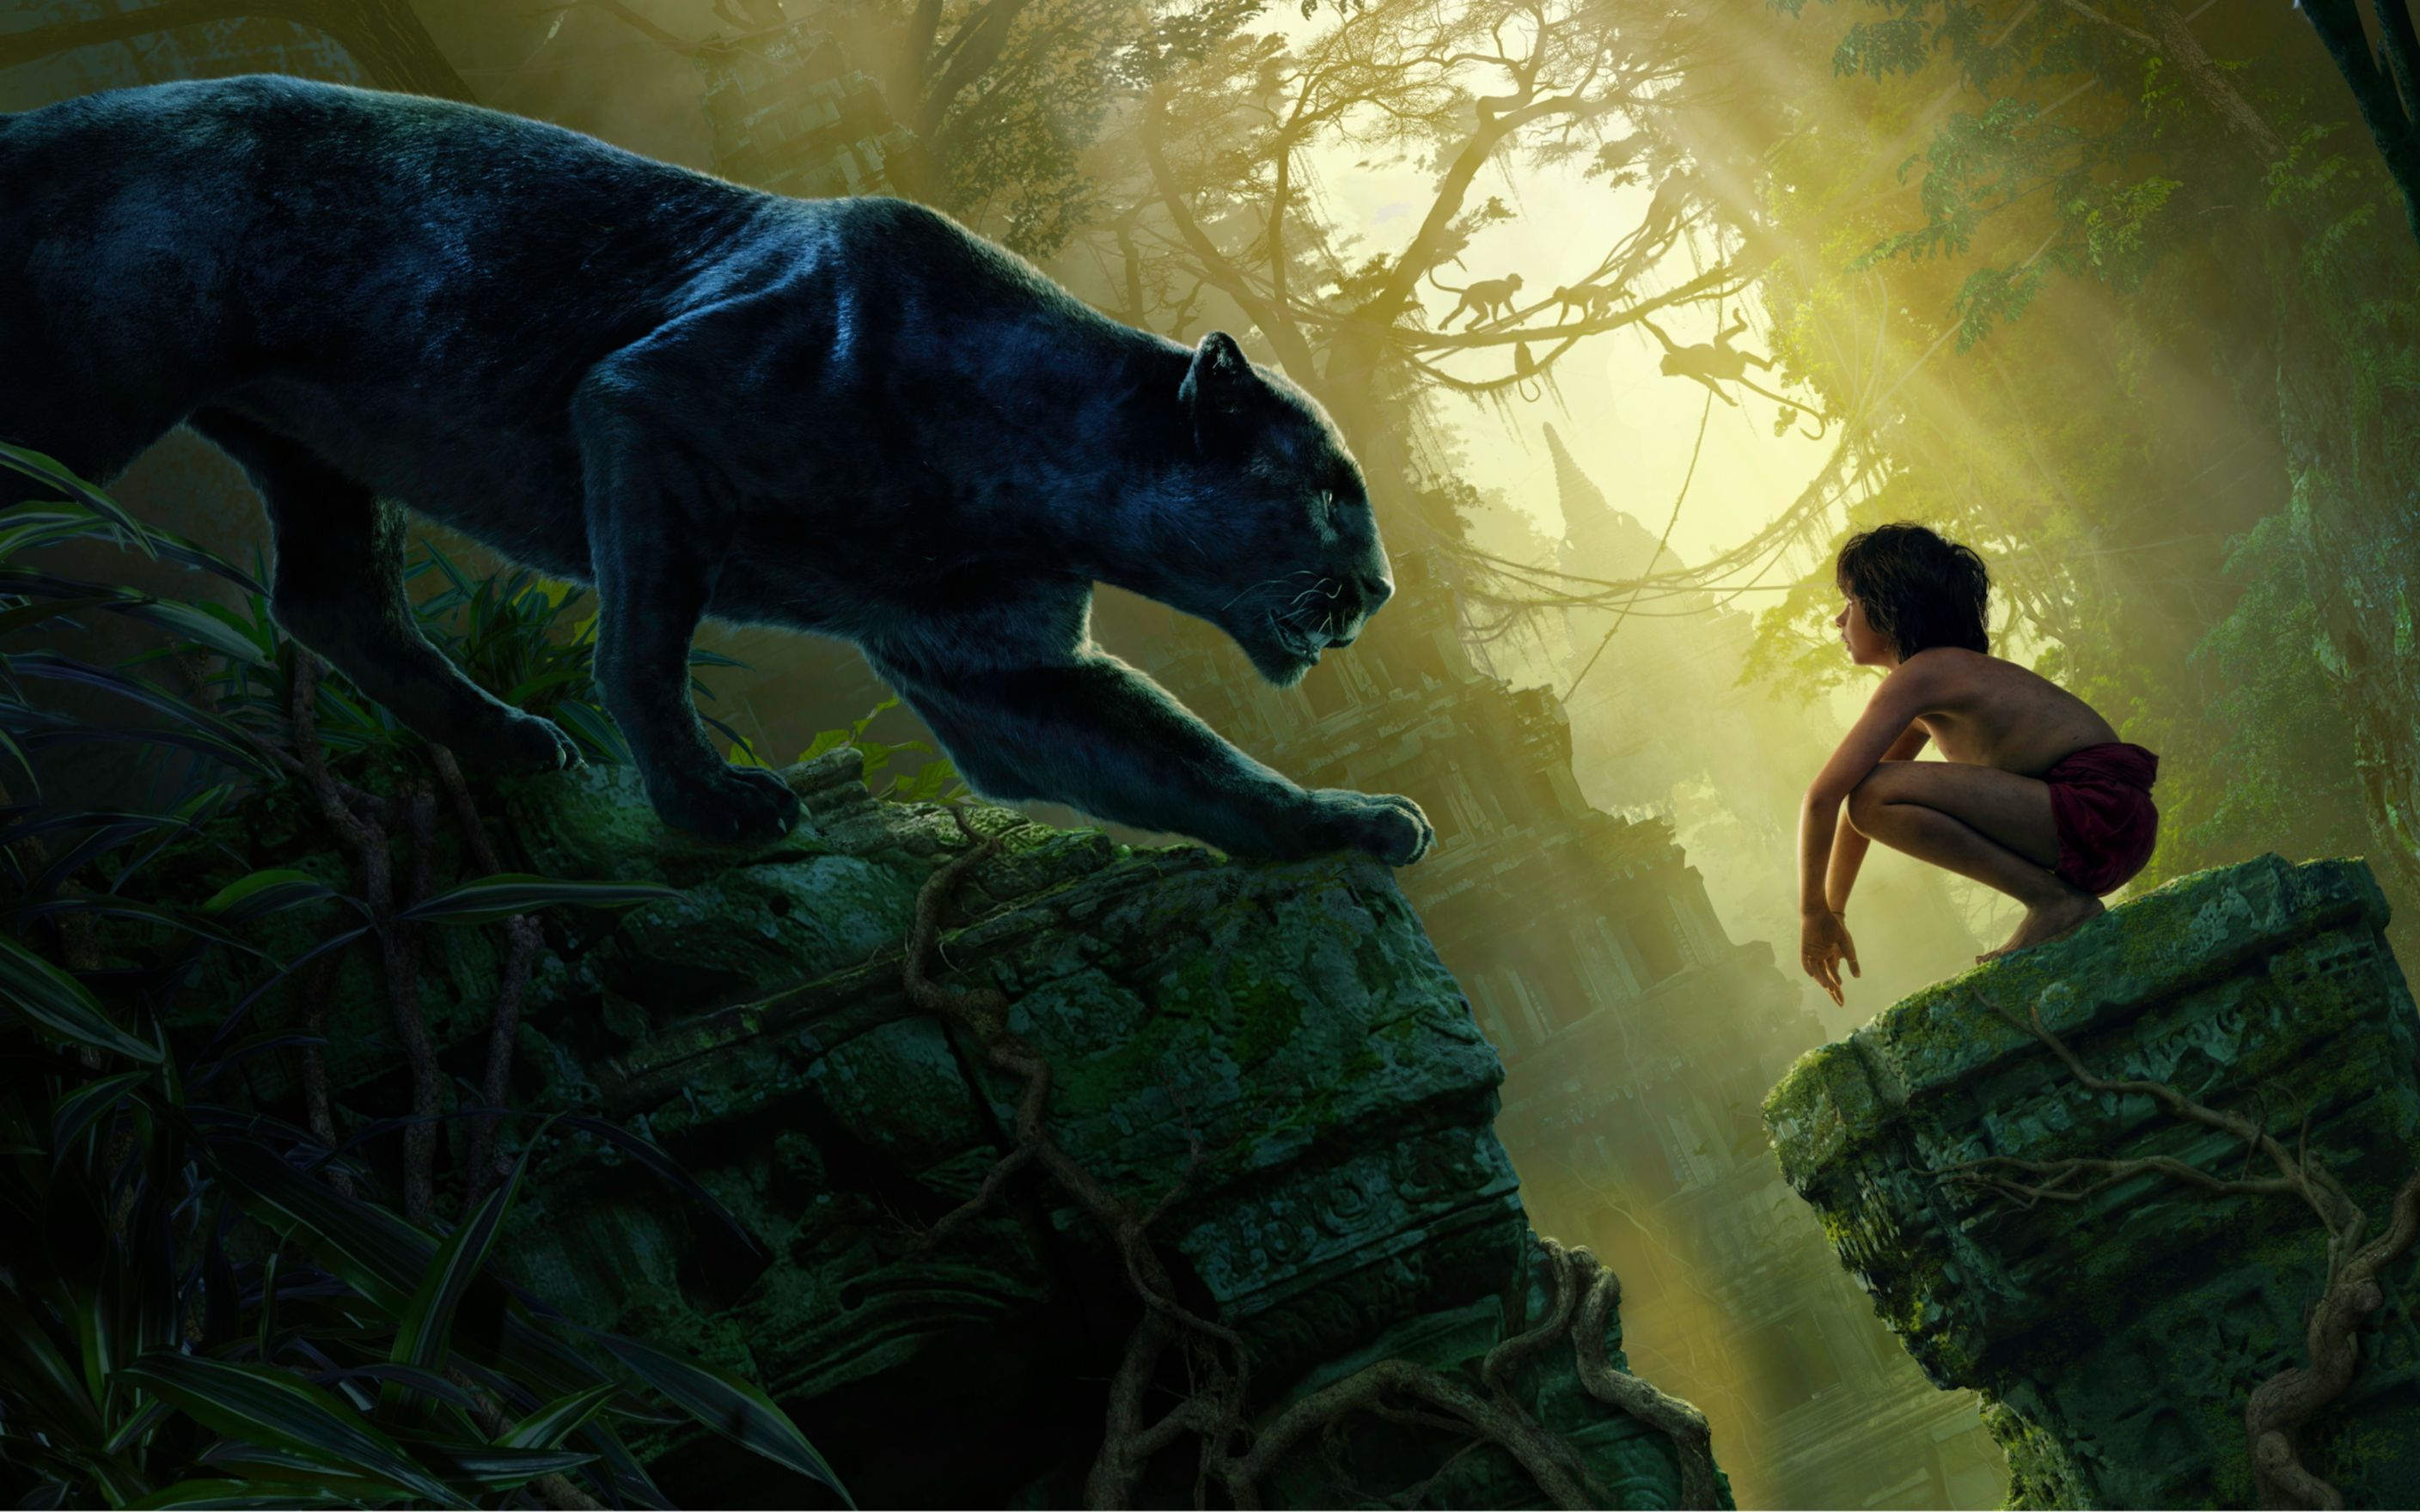 Download free HD Mowgli Bagheera Black Panther The Jungle Book Wide Wallpaper, image